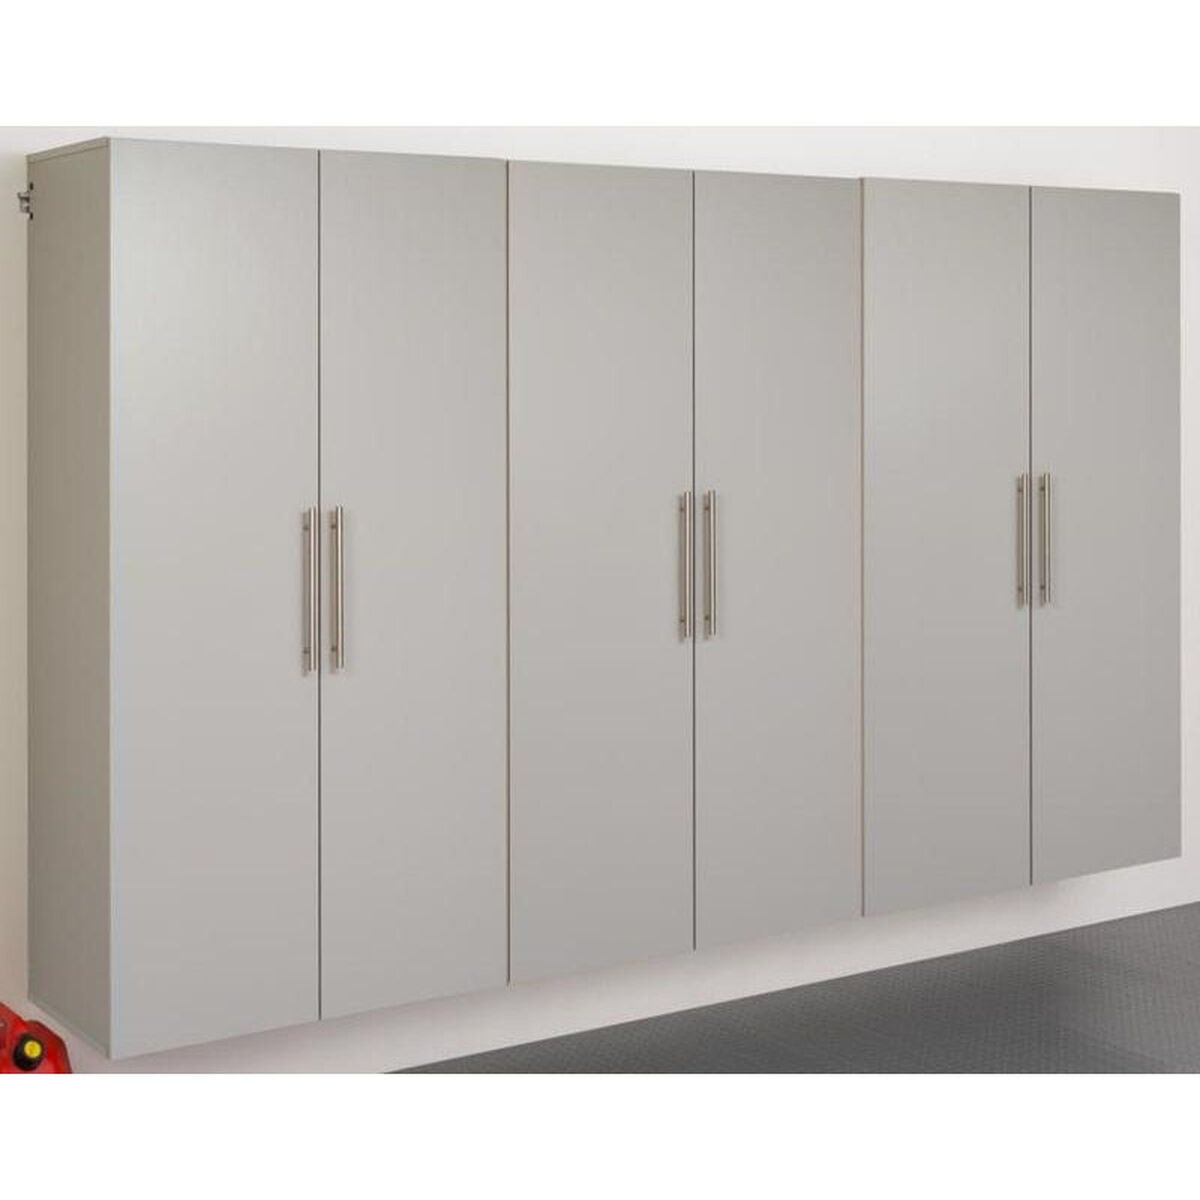 Our Hangups 108 Storage Cabinet Set E 3 Piece Cabinets Gray